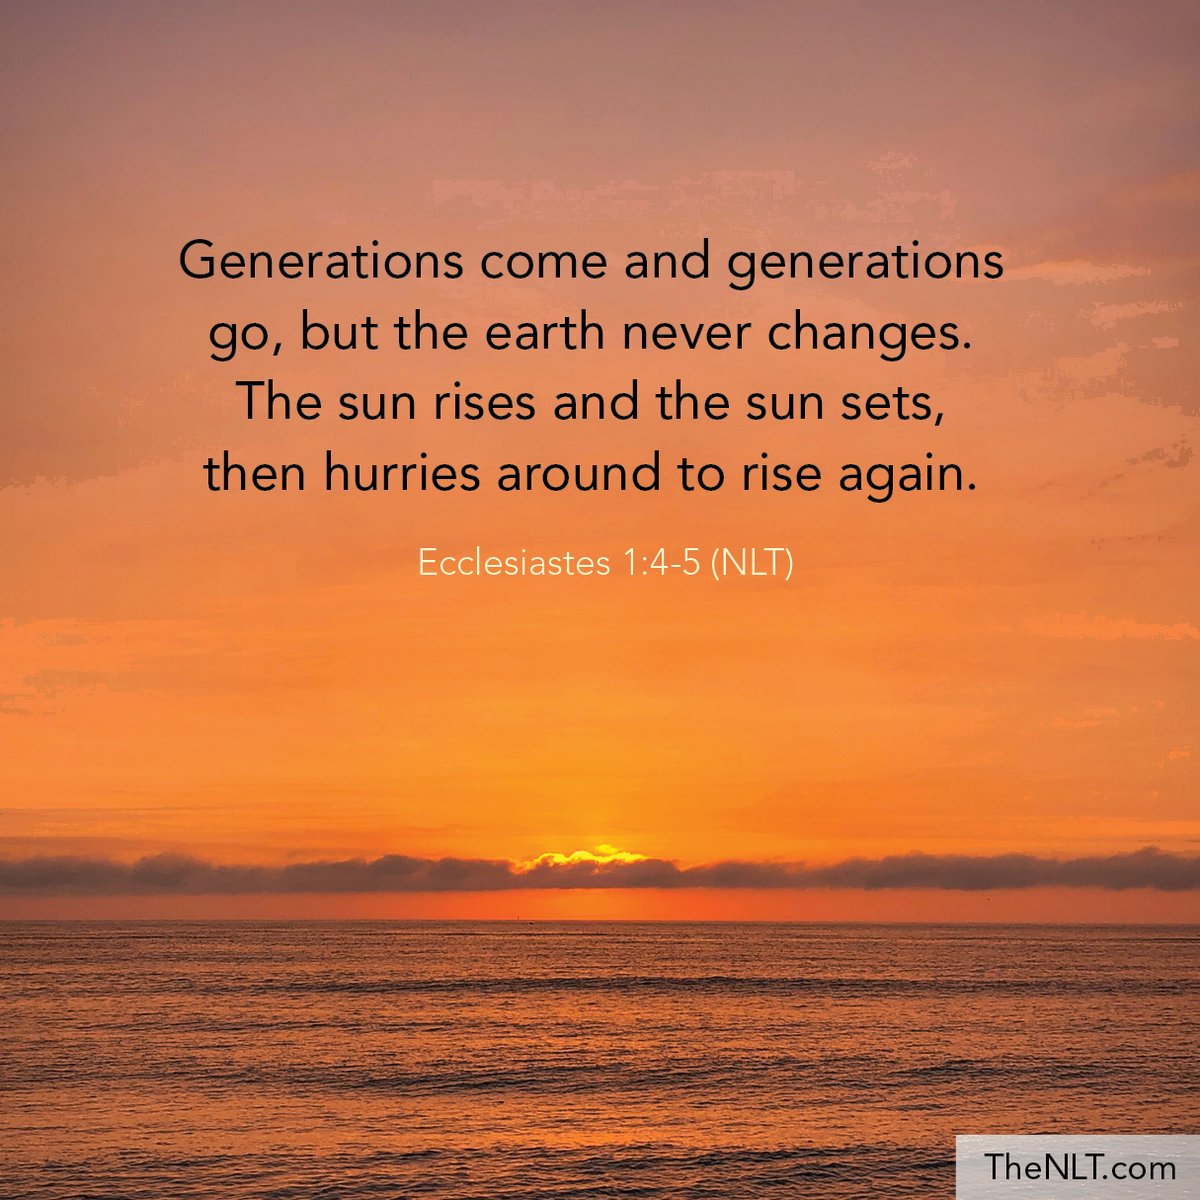 "NLT Bible Verse on Twitter: """"Generations come and generations go, but the  earth never changes. The sun rises and the sun sets, then hurries around to  rise again."" Ecclesiastes 1:4-5, NLT #NewLivingTranslation #"